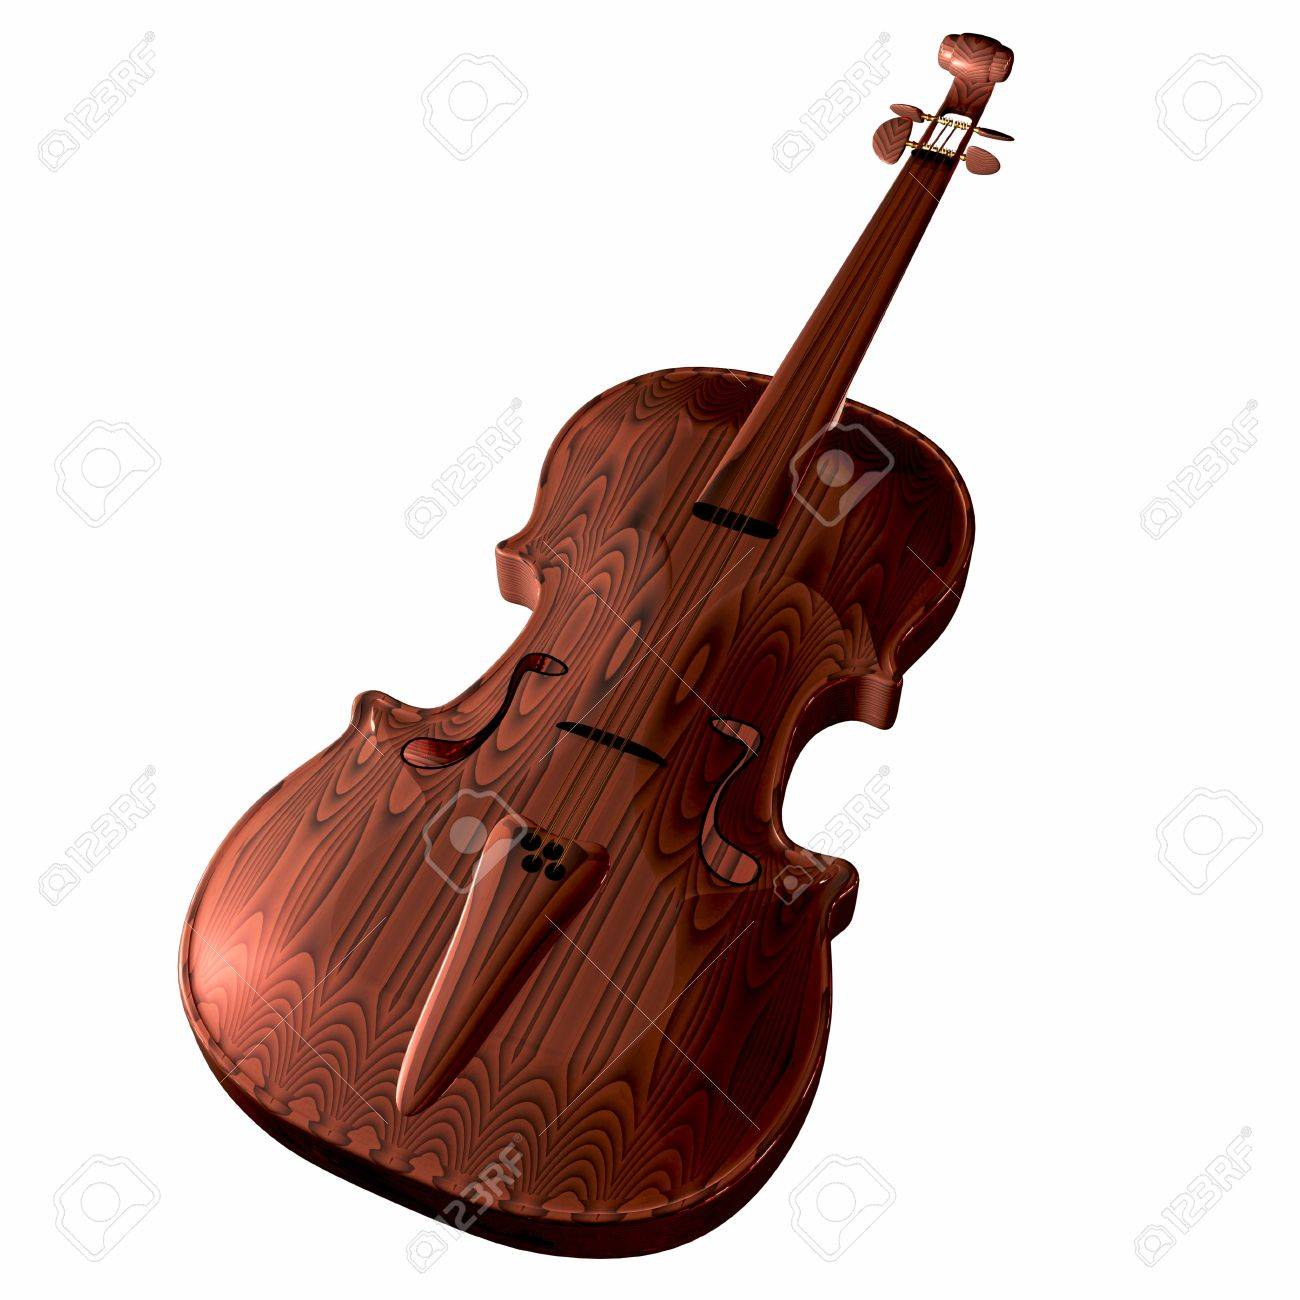 violins under the white background Stock Photo - 14168934